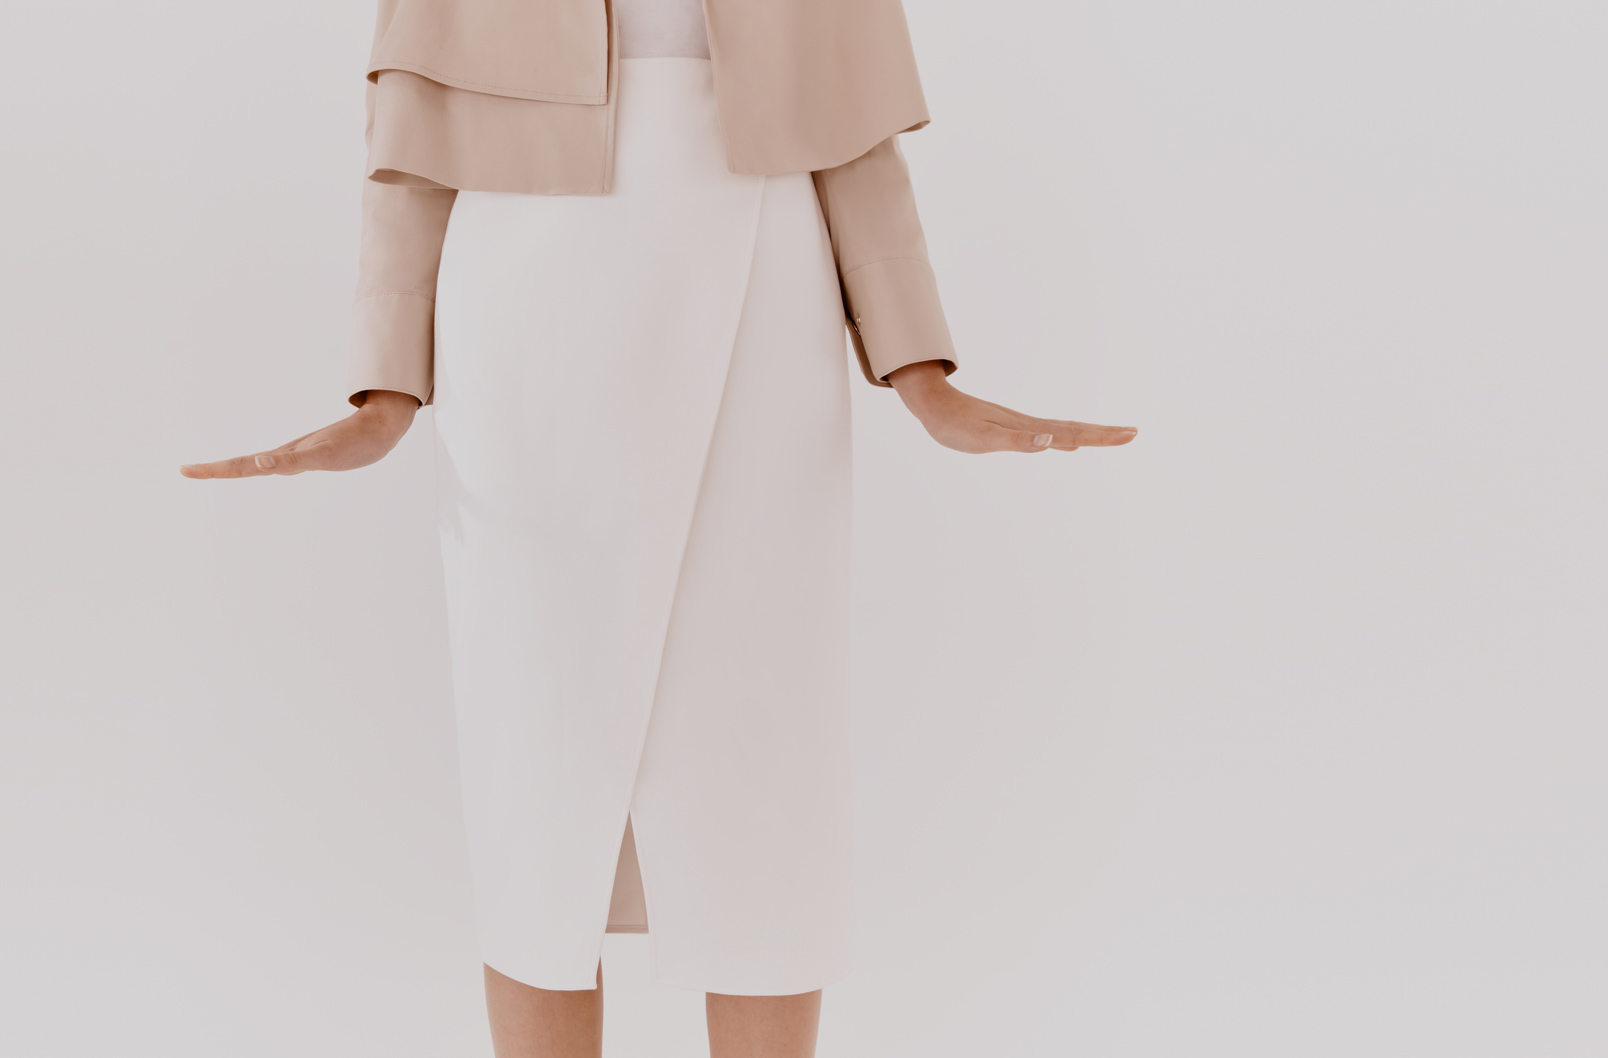 Detail shot of the Cotton Twill Paneled Skirt on a model